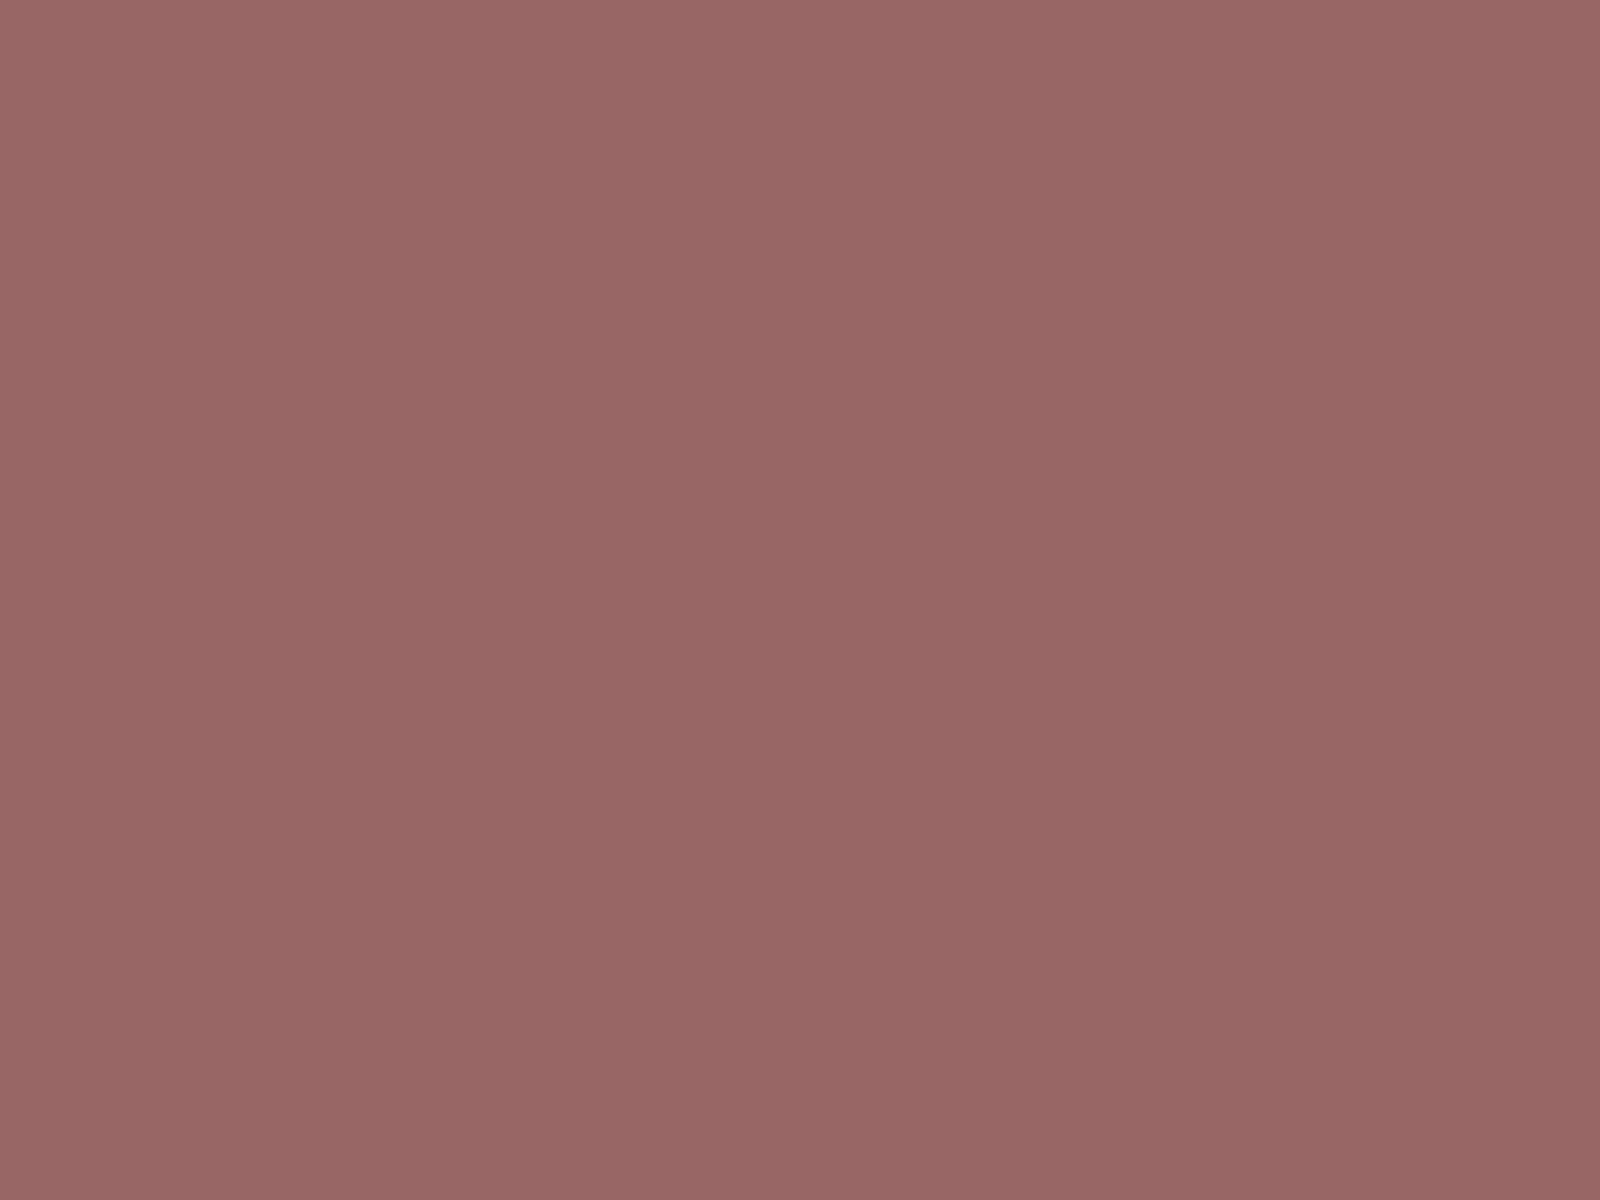 1600x1200 Copper Rose Solid Color Background